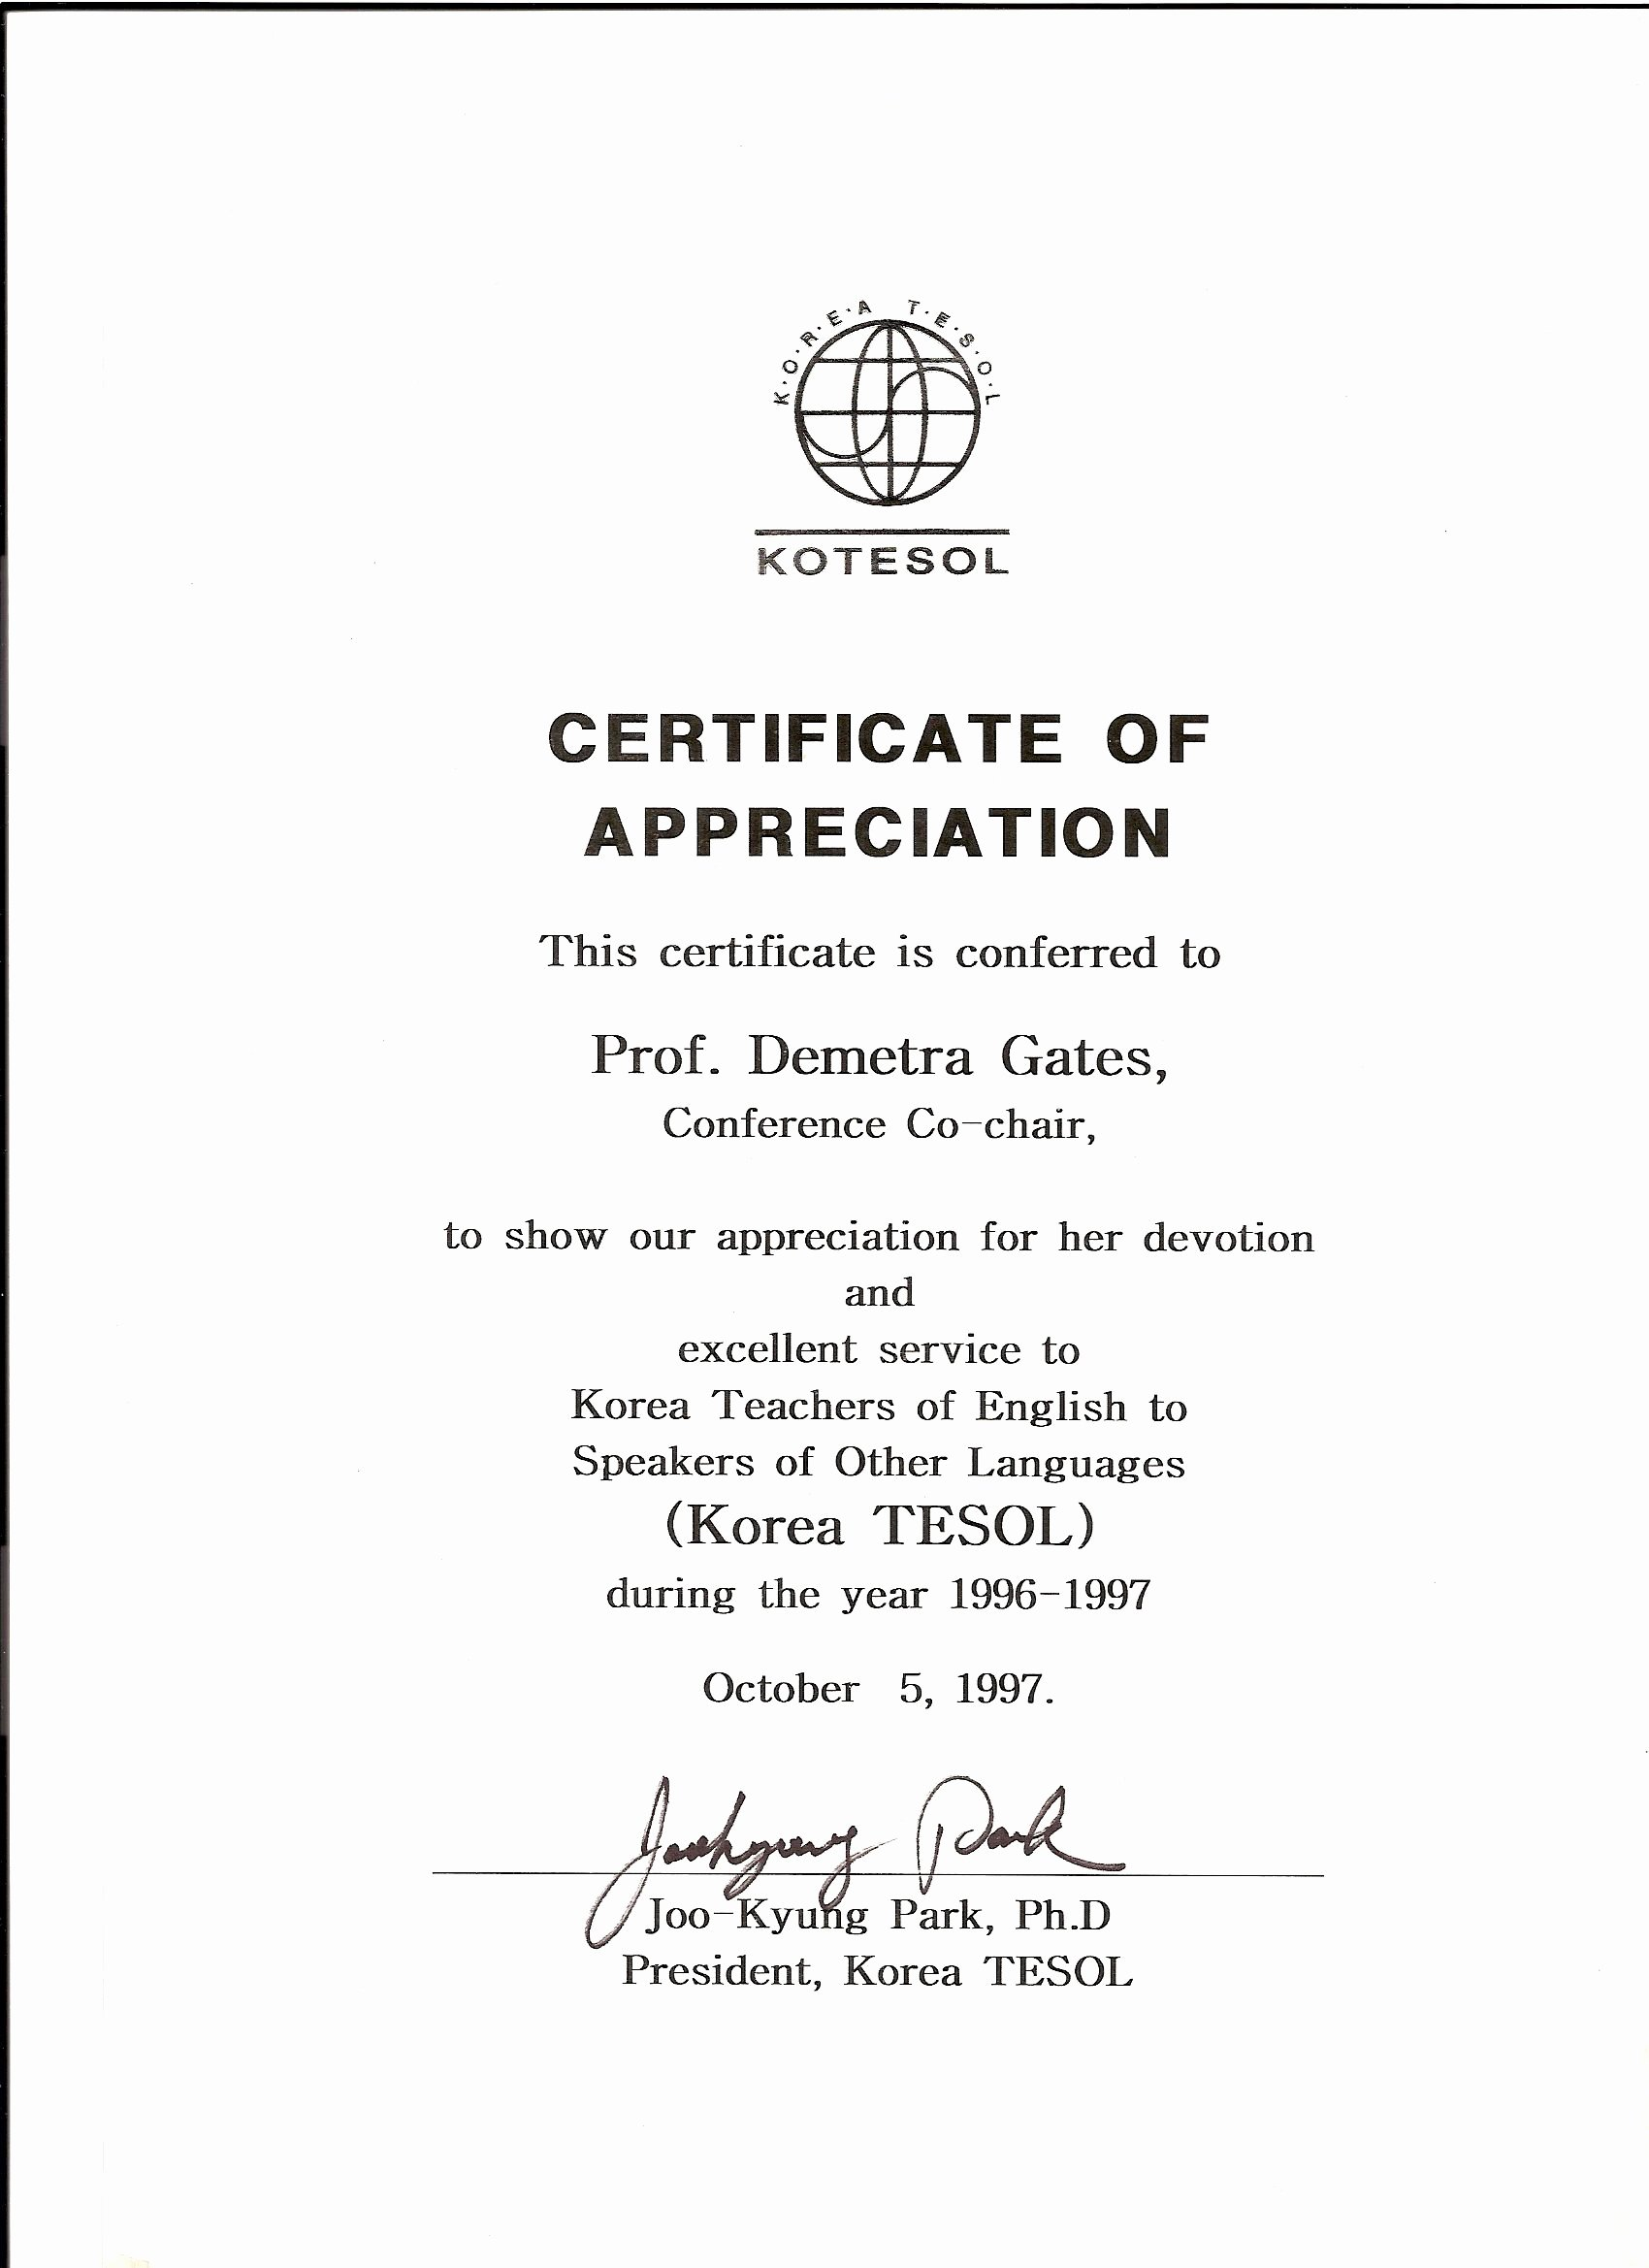 Certificate Of Appreciation for Teachers Awesome Kotesol Presidential Certificate Of Appreciation 1997 Conference Co Chair